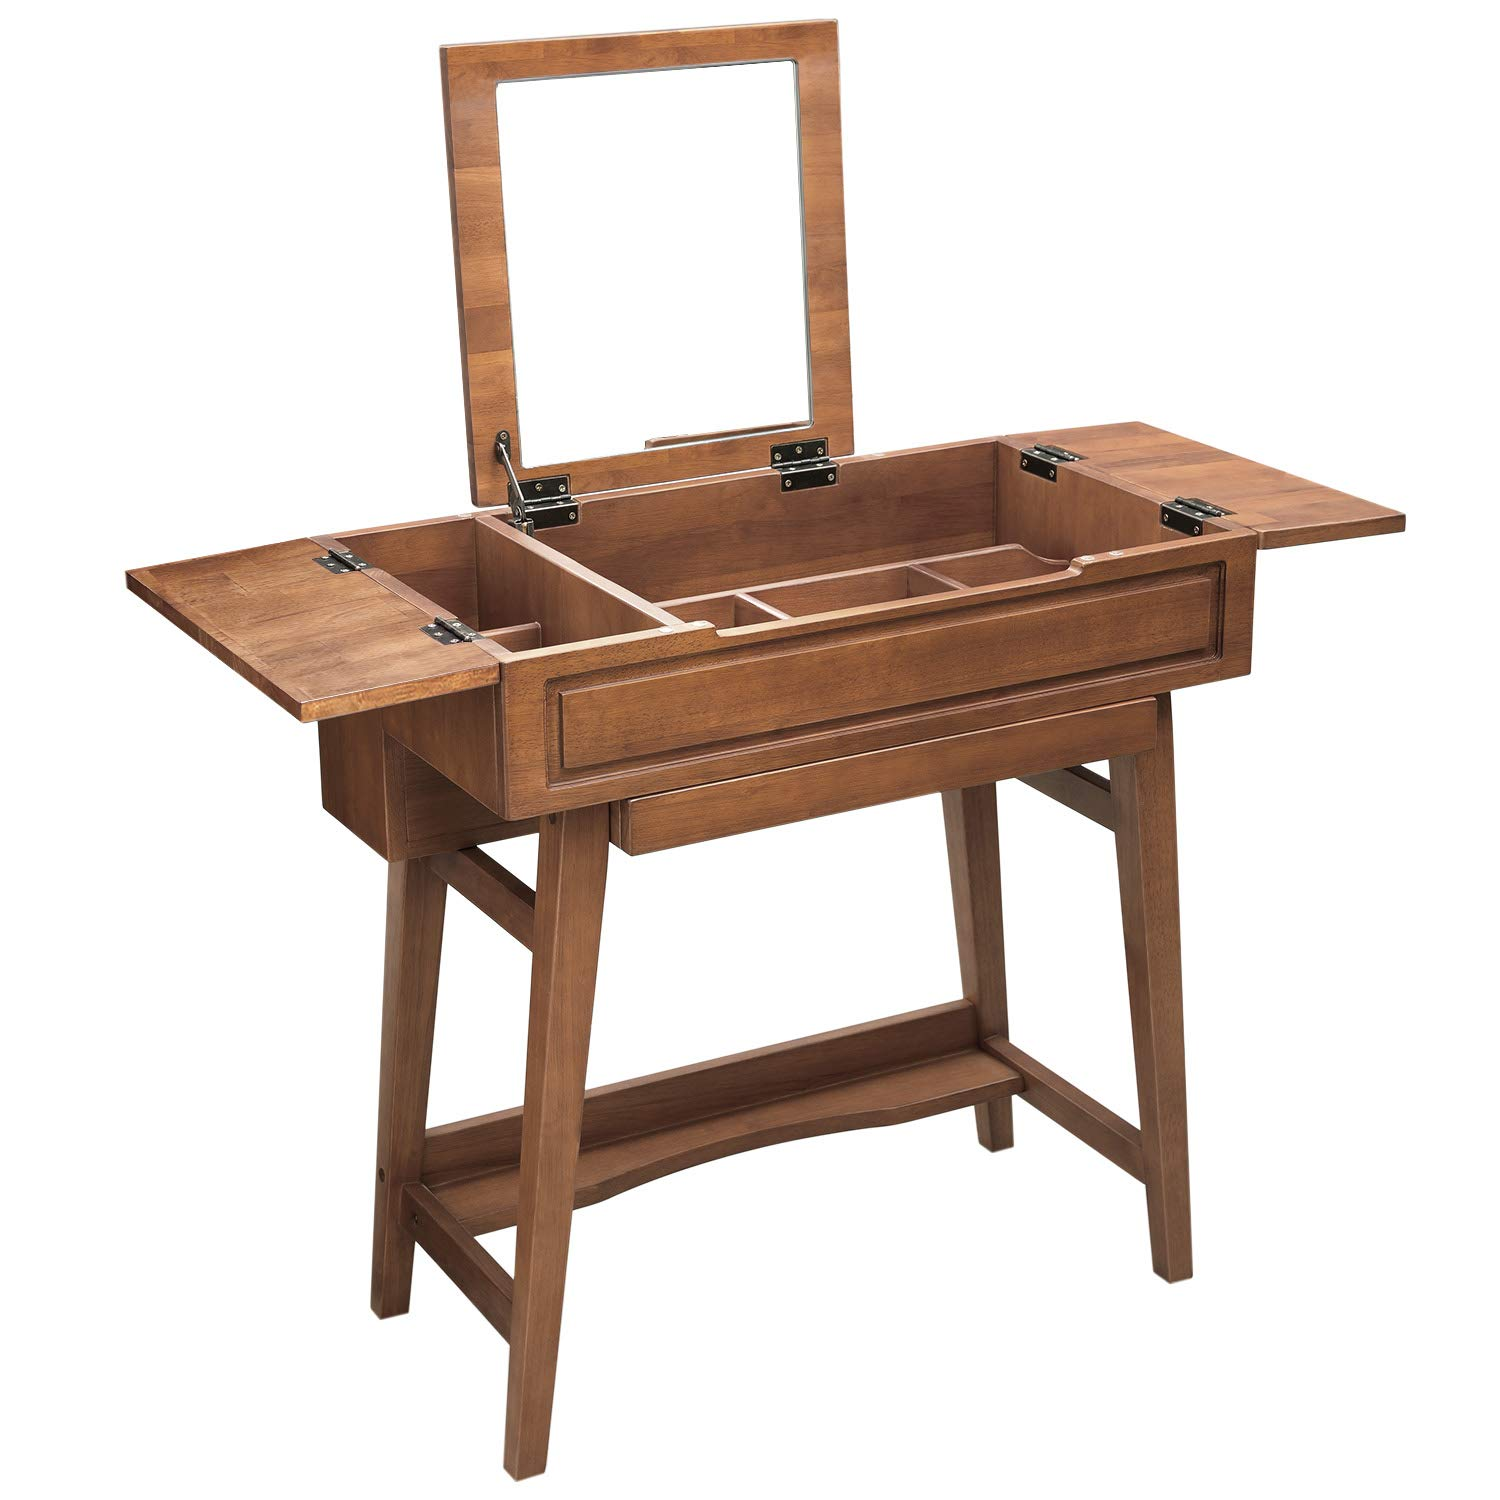 VASAGLE Vanity Table with Flip Top Mirror, Solid Wood Makeup Dressing Table Desk, 6 Organizers for Different Sized Makeup Accessories, 1 Small Drawers for Lipsticks, Powders, Saddle Brown URDT26BR